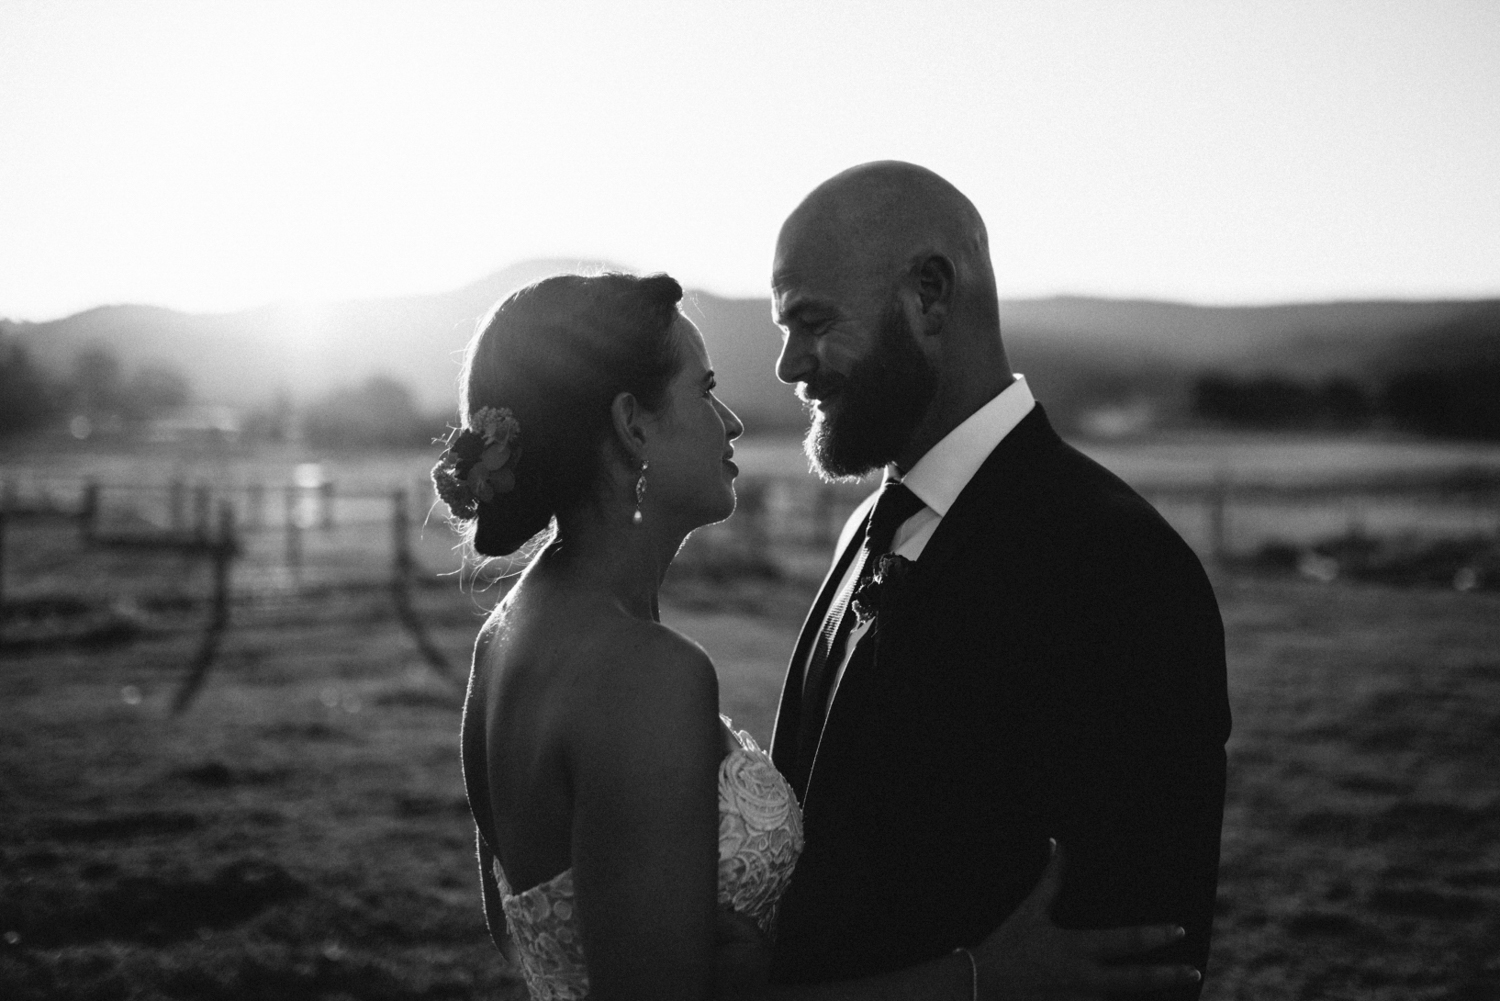 Beautiful wedding portrait at willie smiths apple shed.